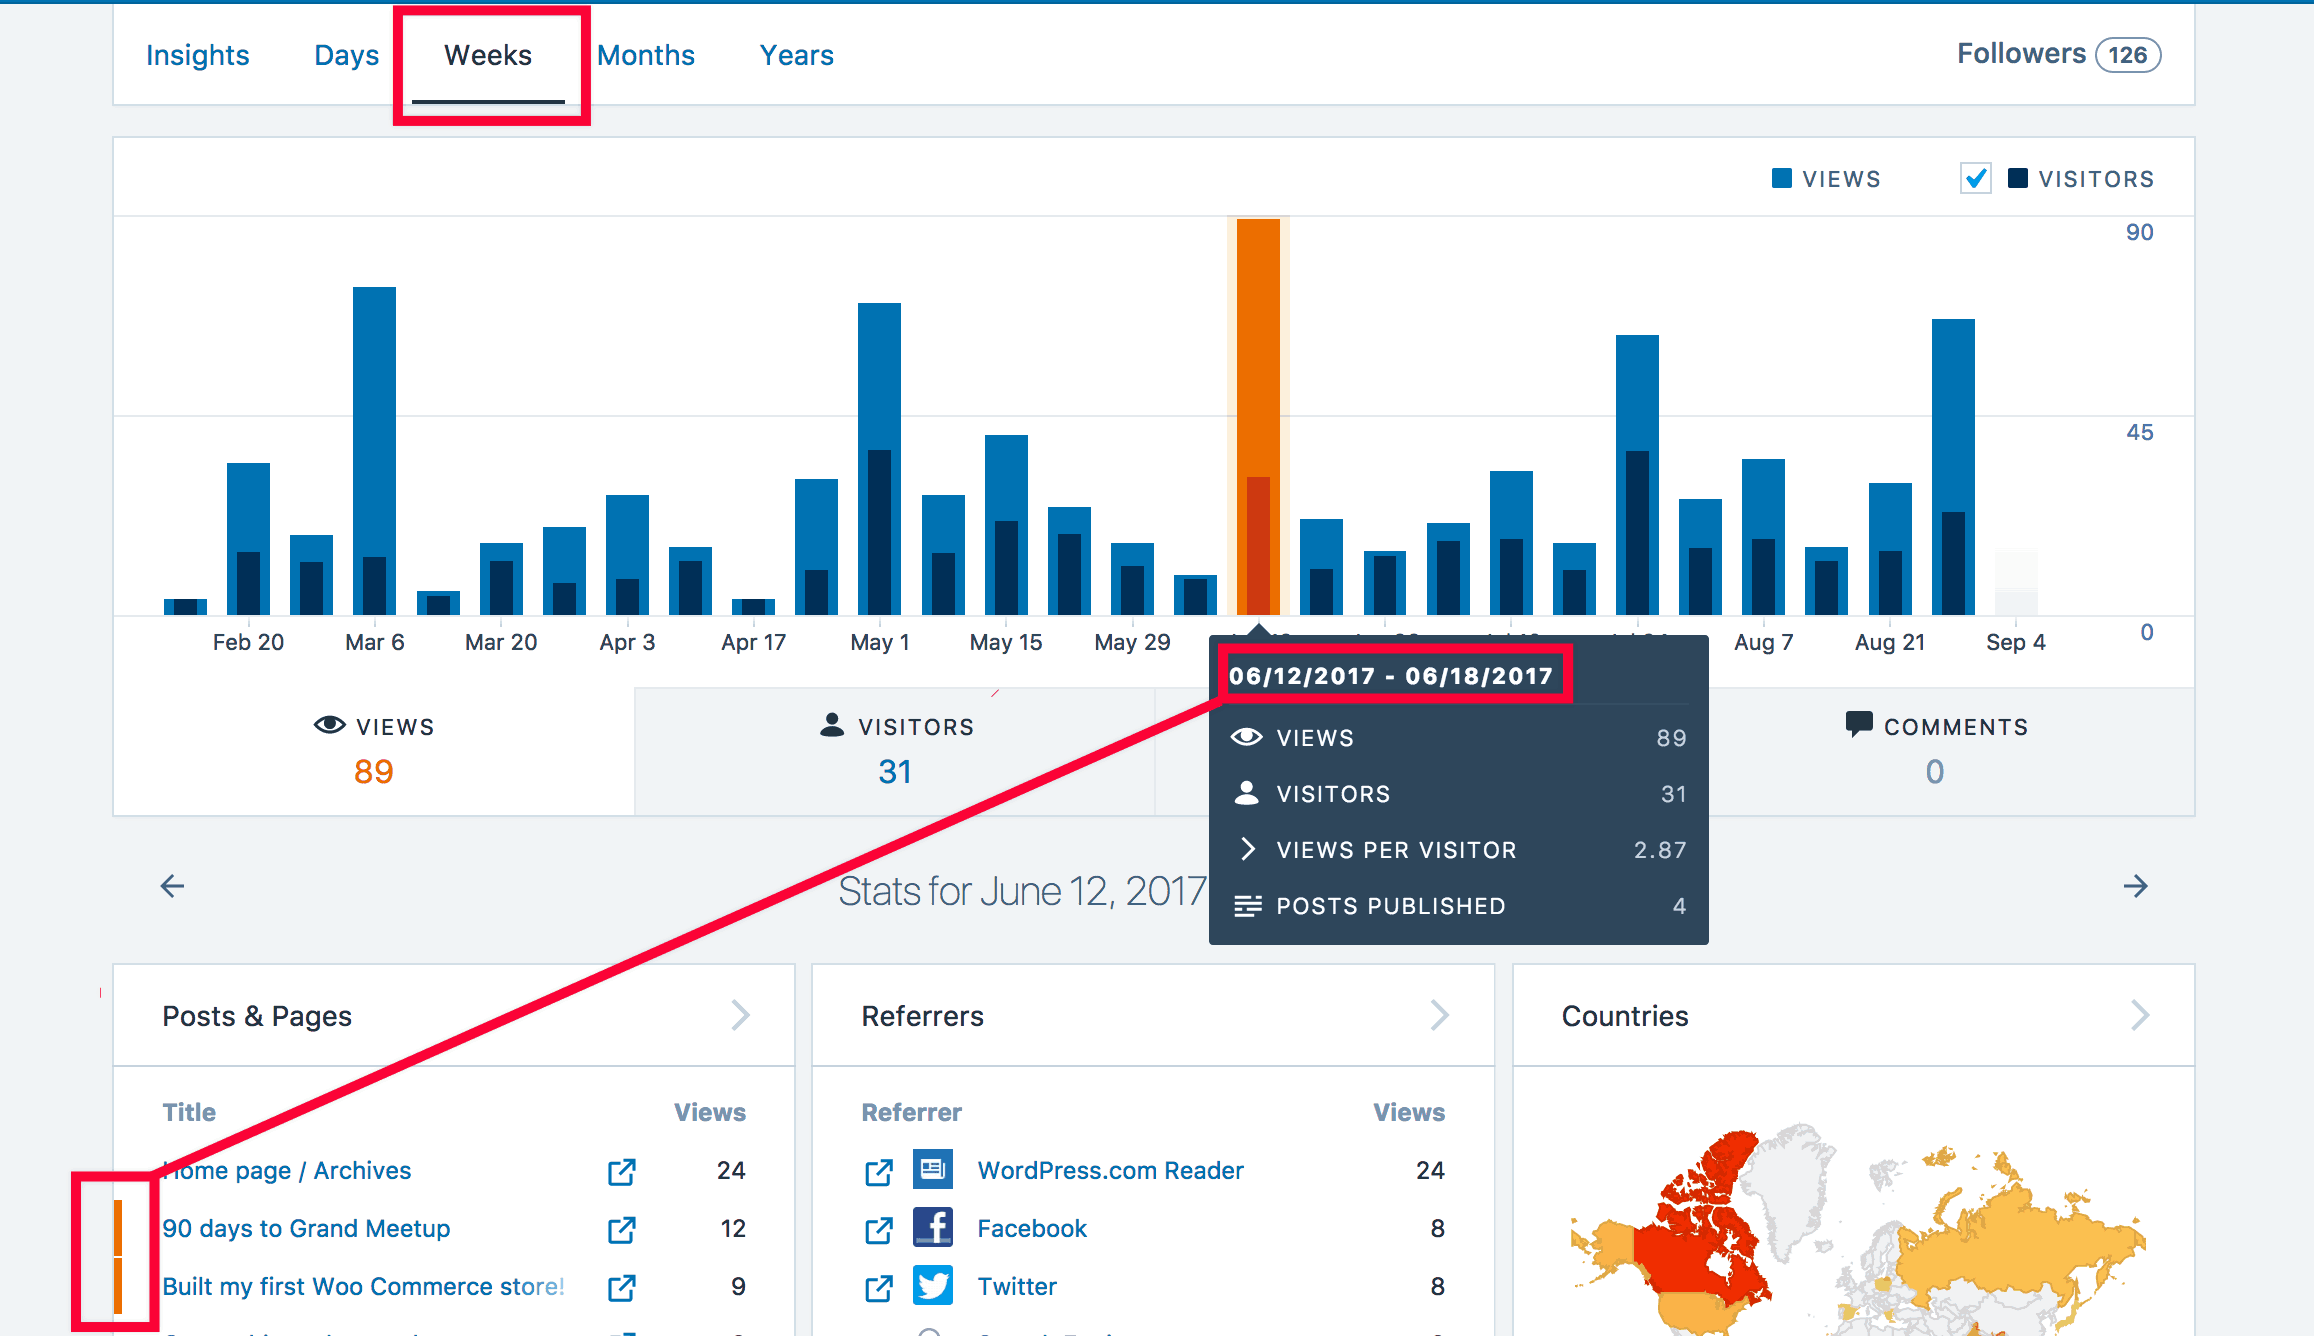 Website Page Views and Clicks